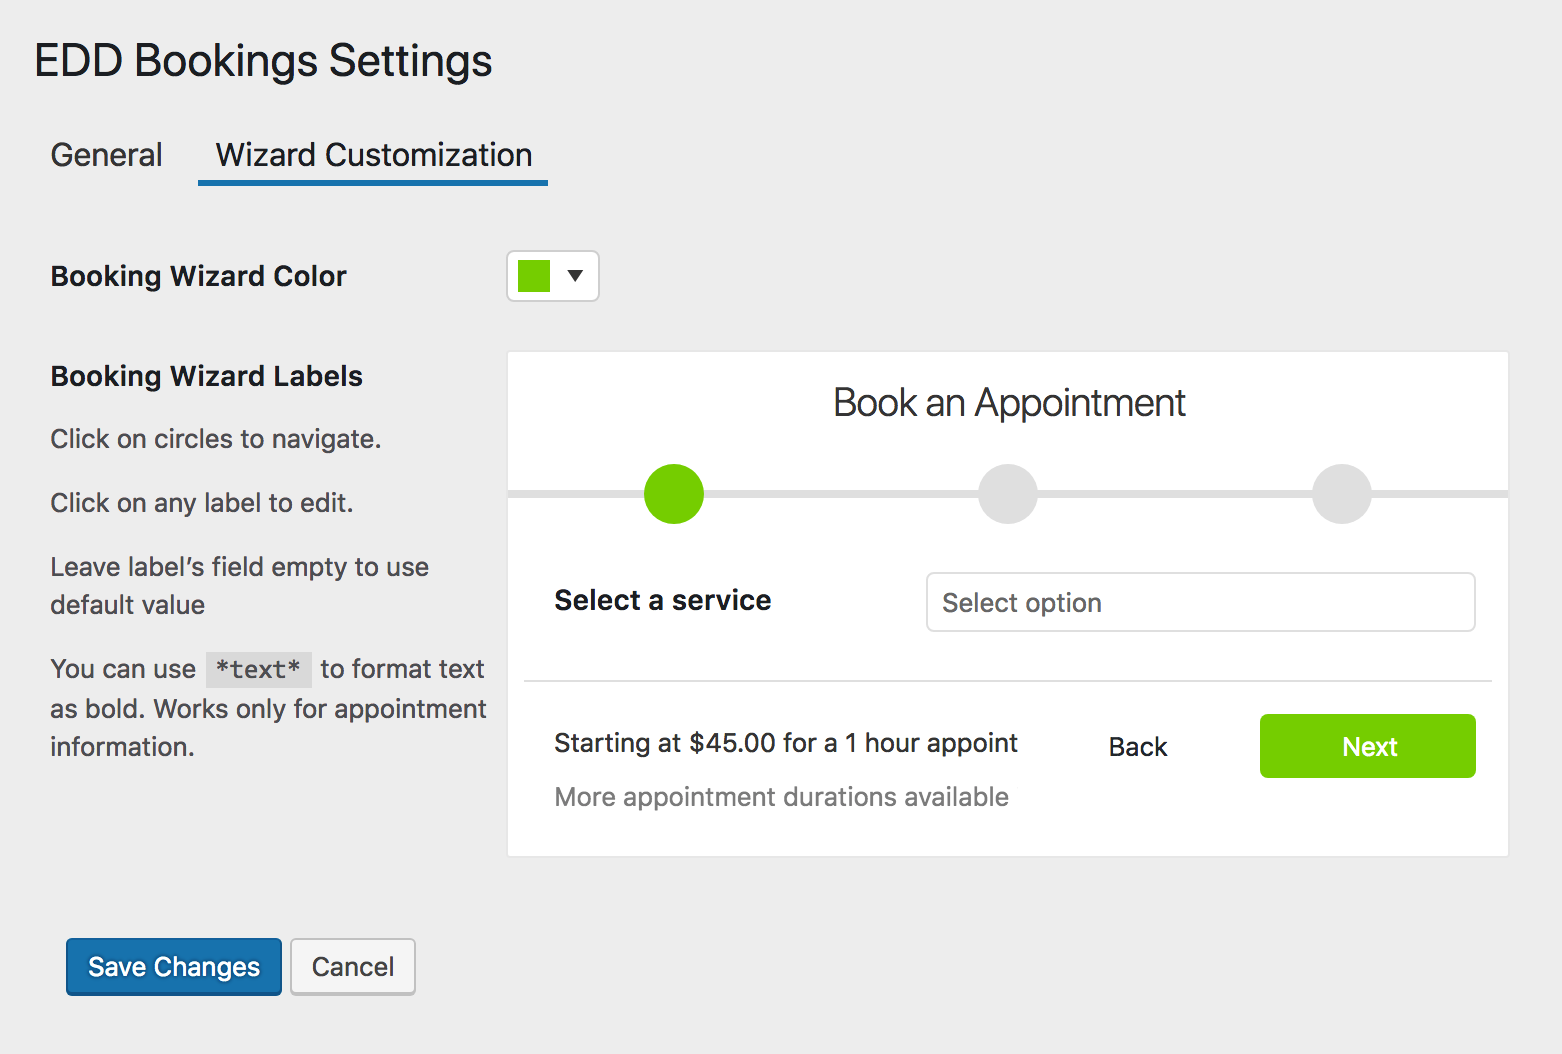 EDD Bookings Wizard Customization Settings